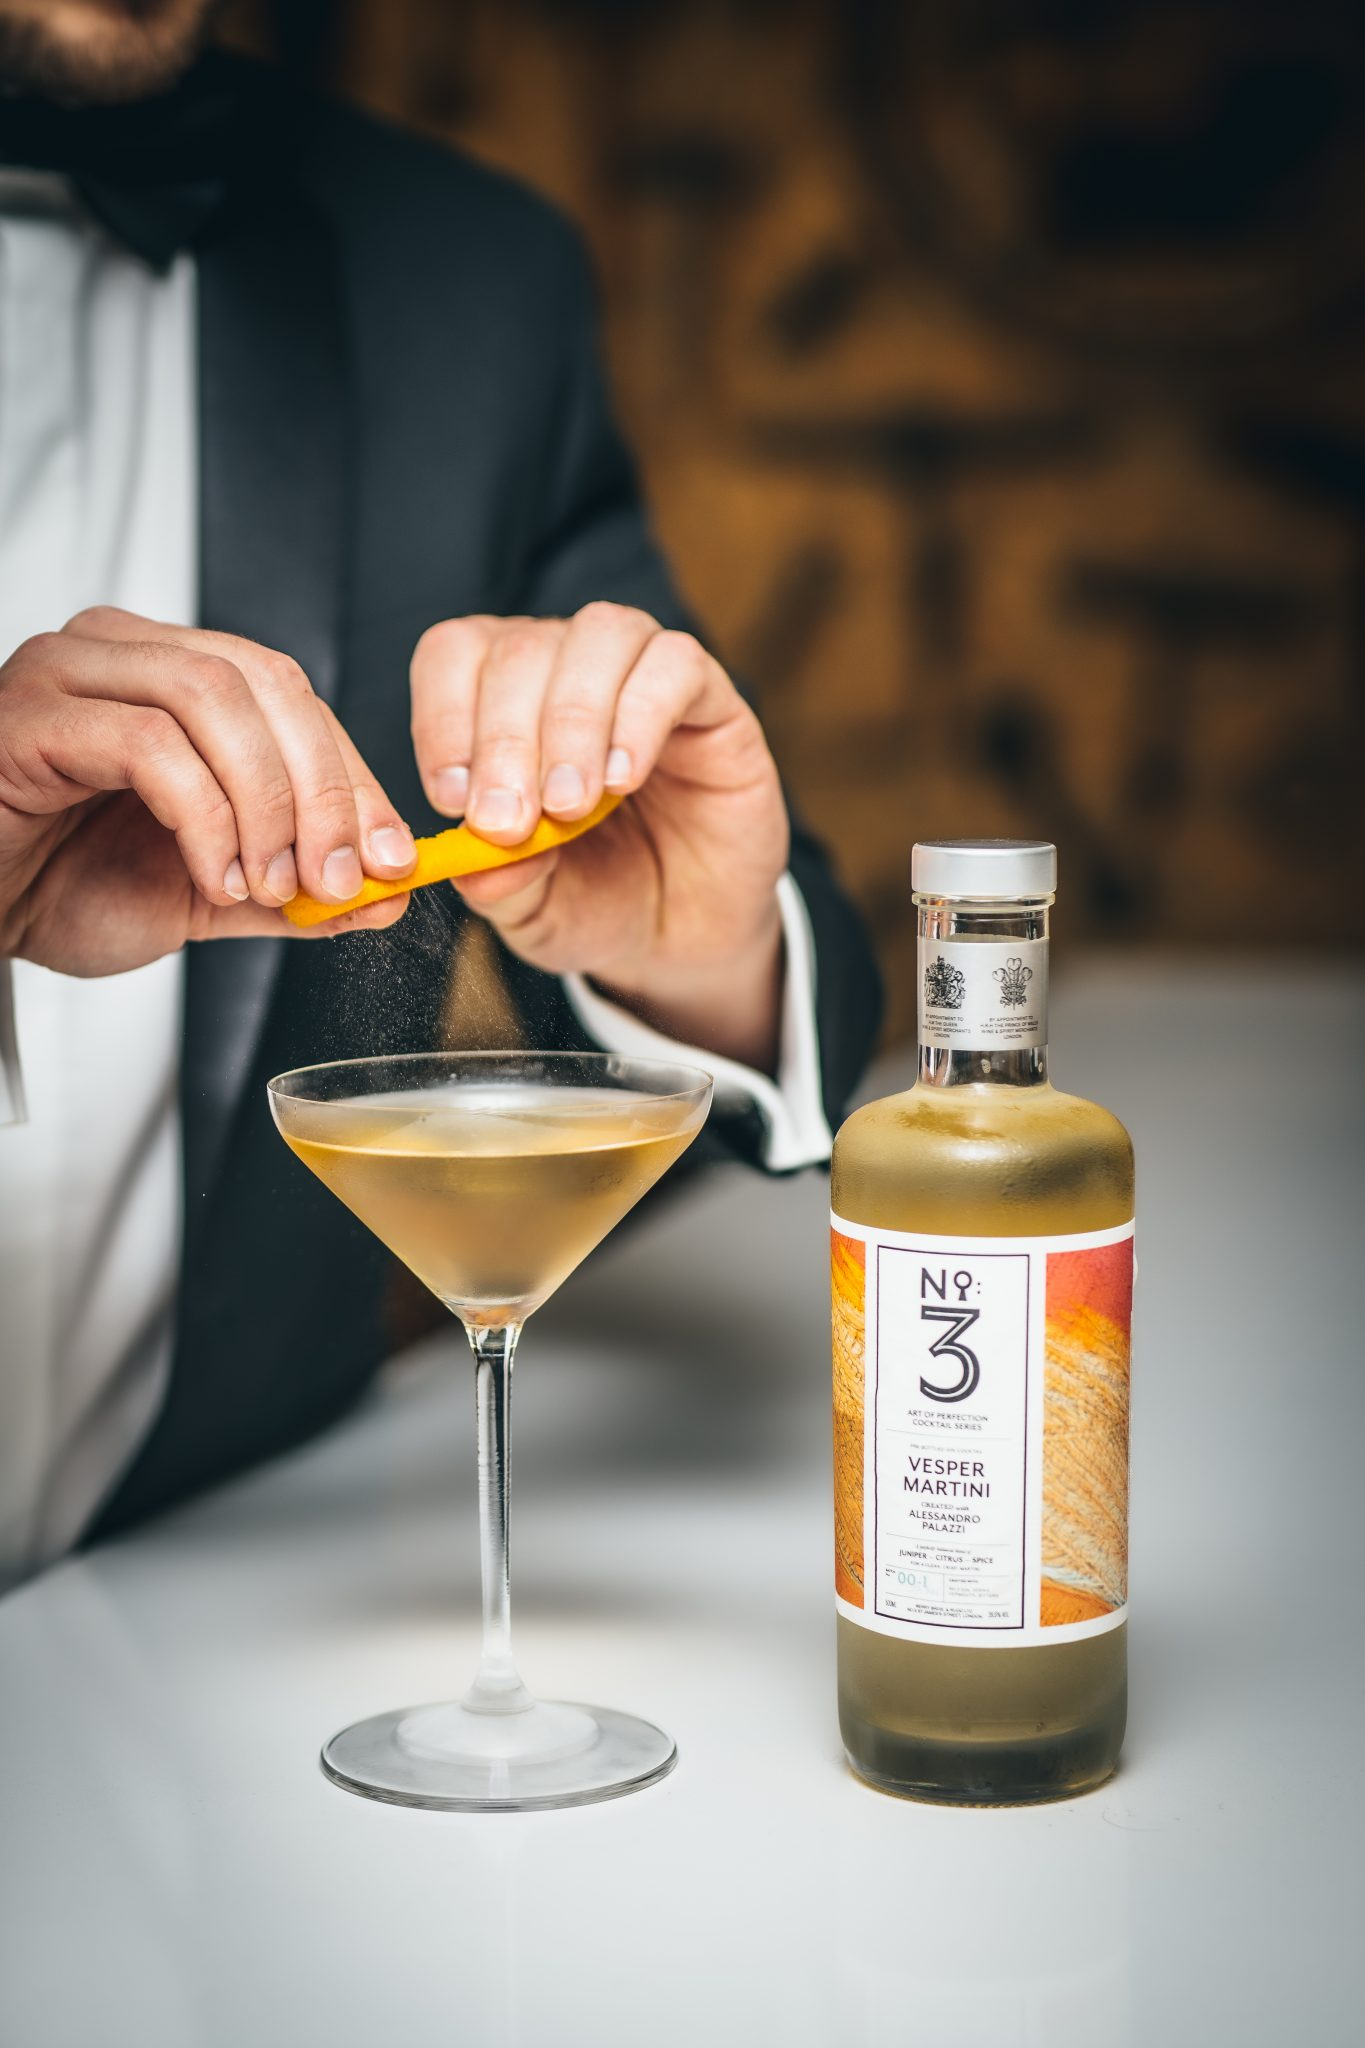 No.3 Gin Vesper Martini DUKES portrait| Photo: @lateef.photography